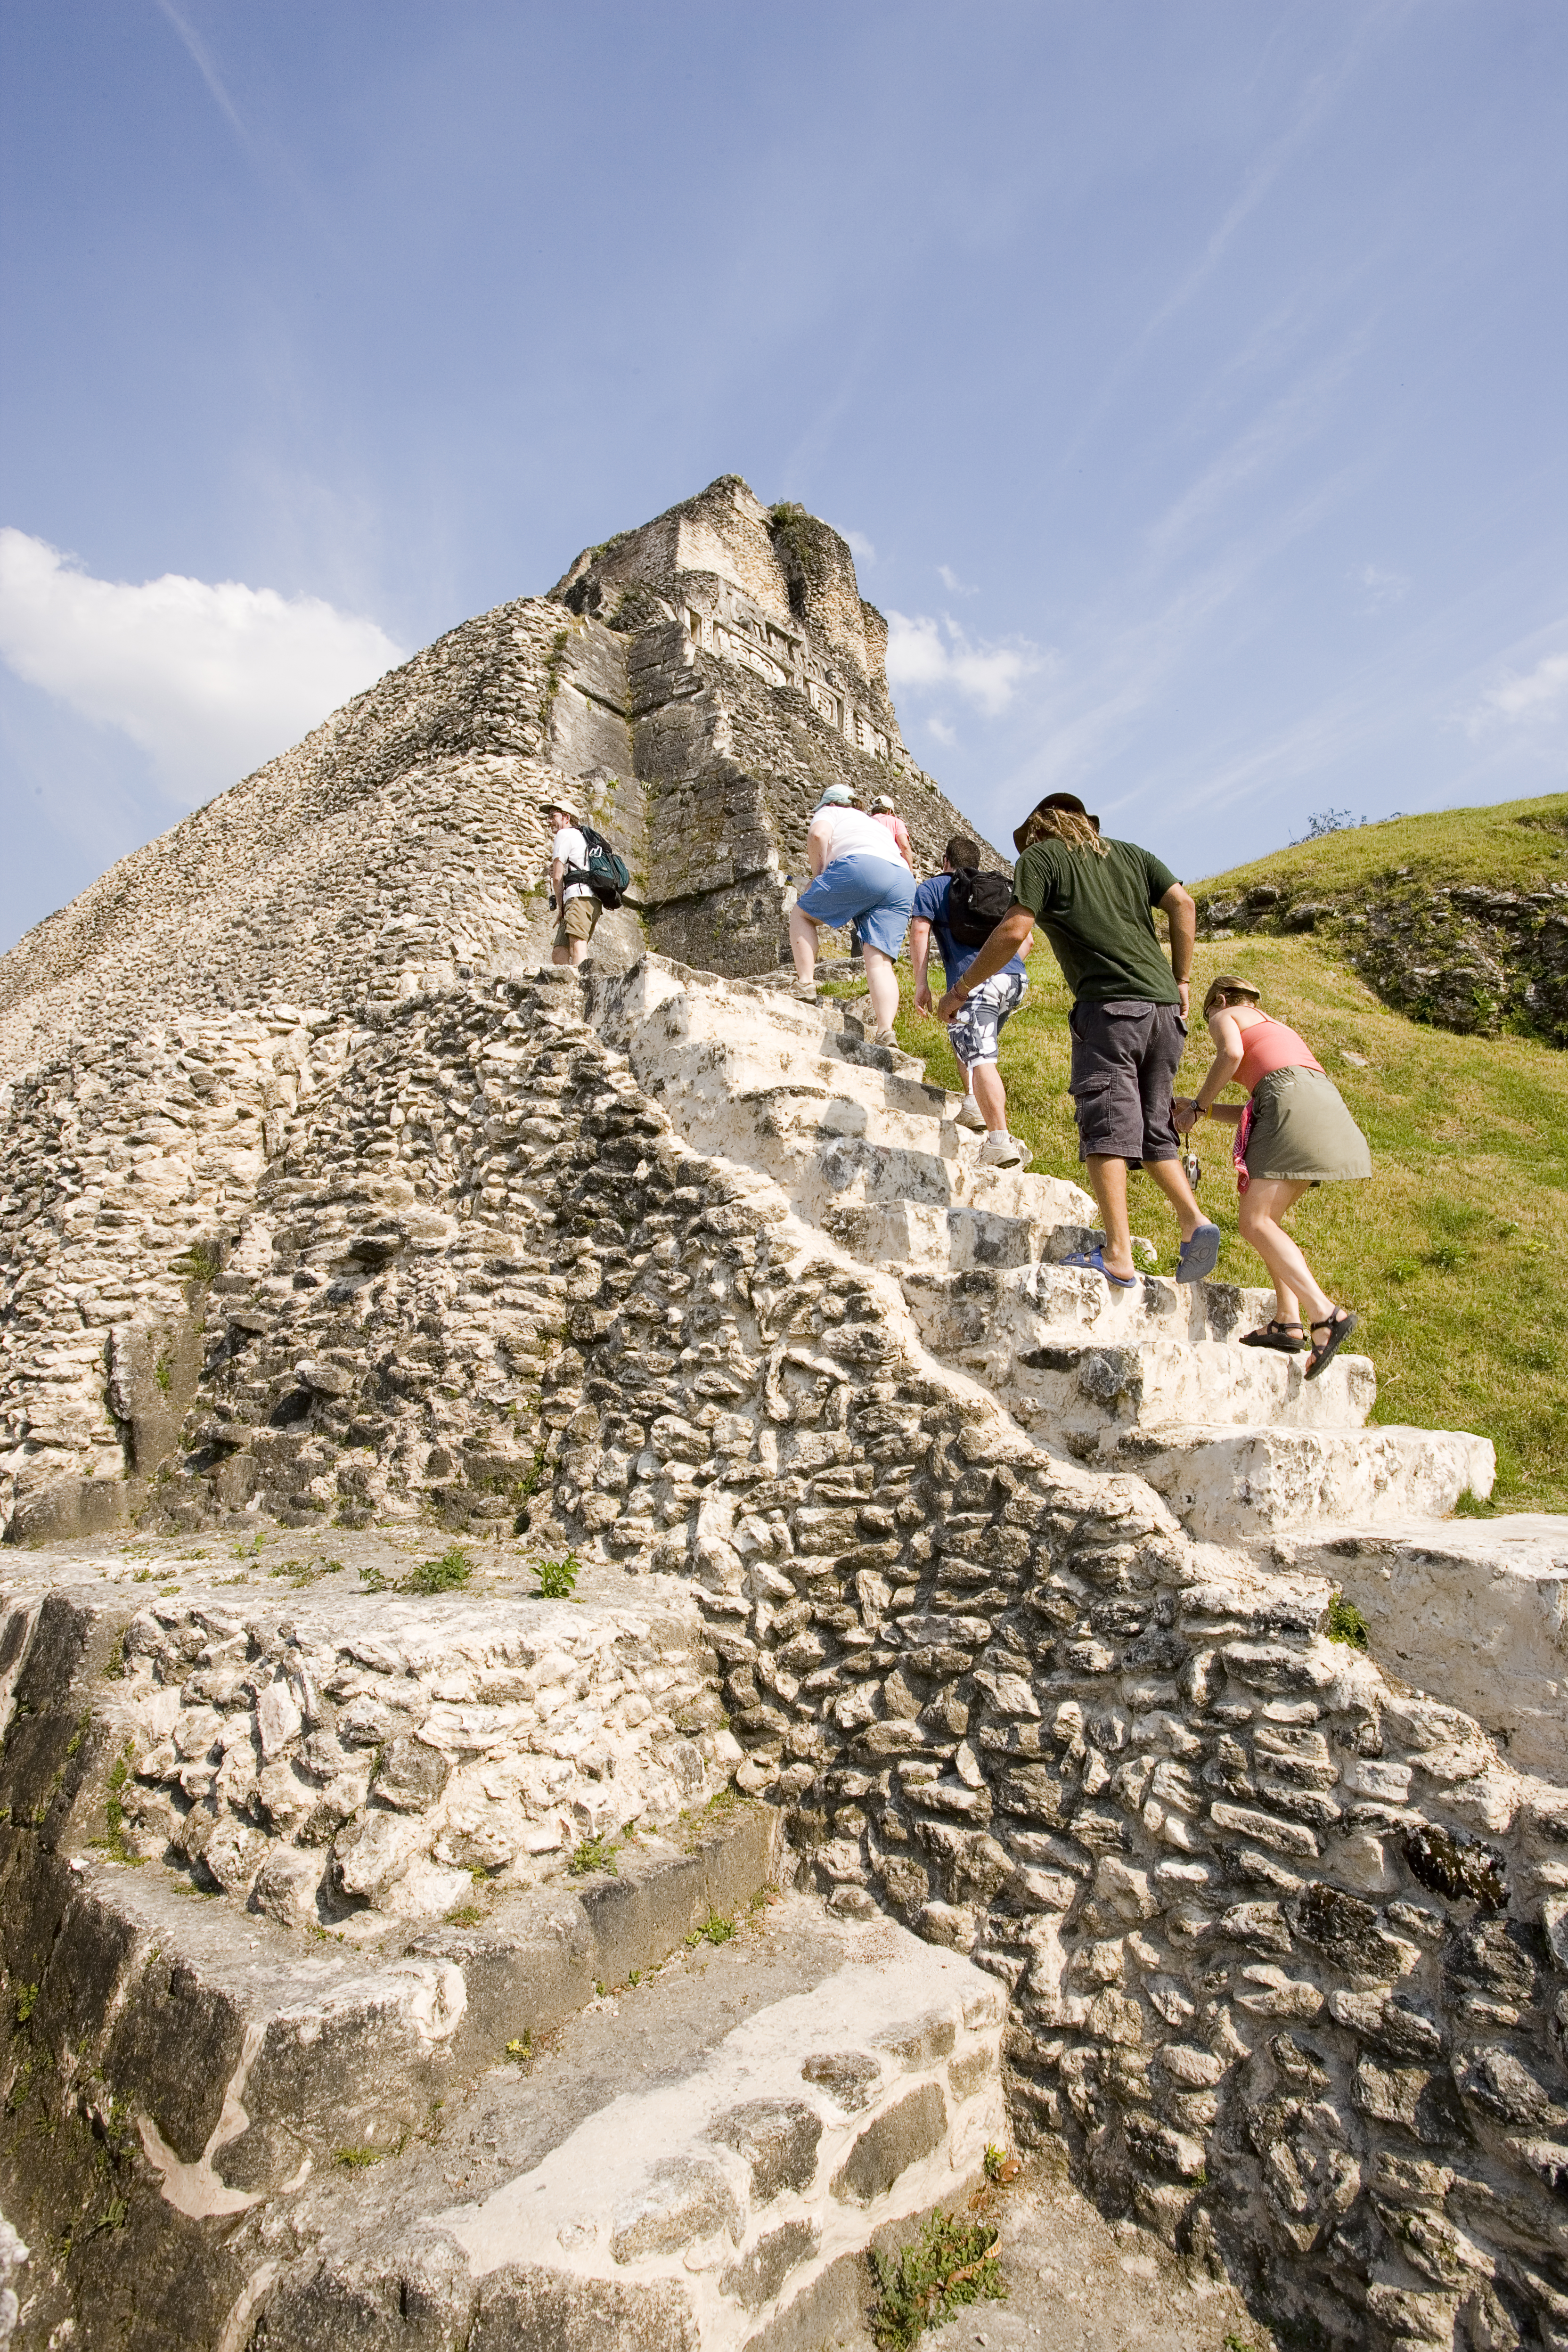 Hiking to the top of Xunantunich